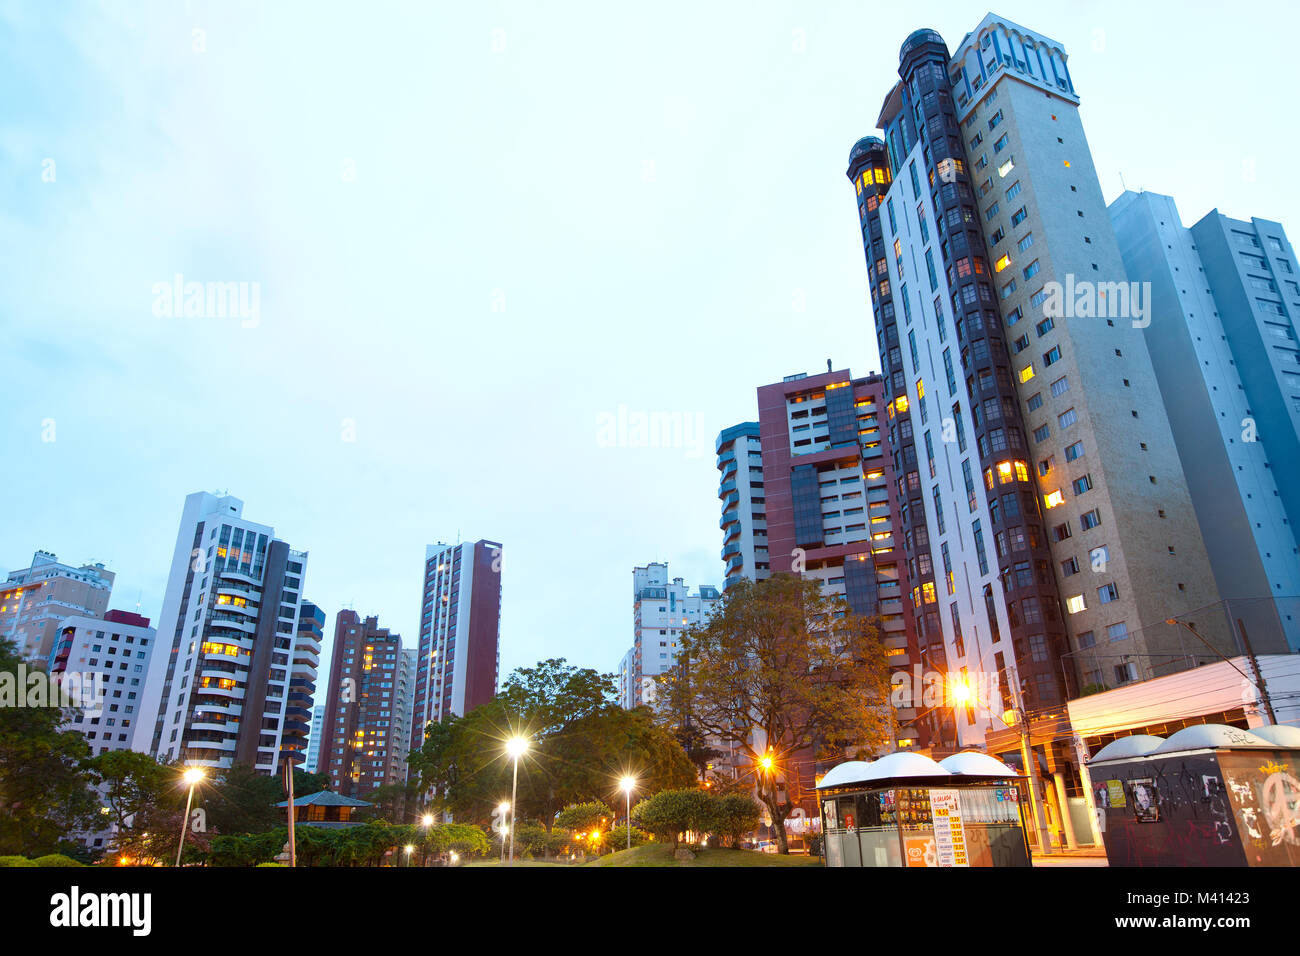 Curitiba, Parana State, Brazil - Apartment buildings around Praca do Japao (Japan Square), in the wealthy neighborhood - Stock Image